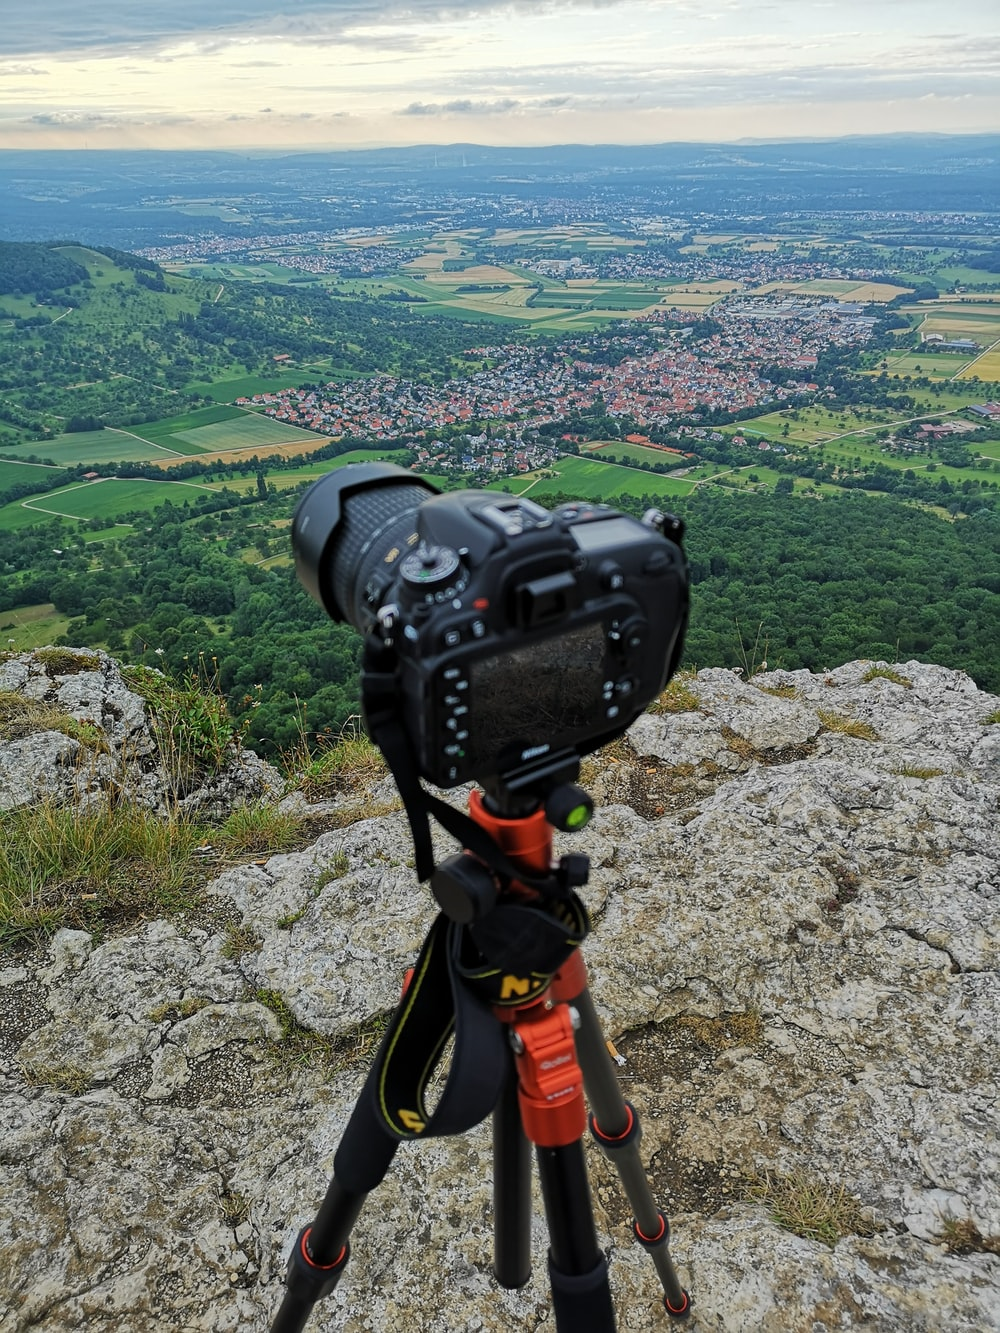 black DSLR camera on black and red tripod stand